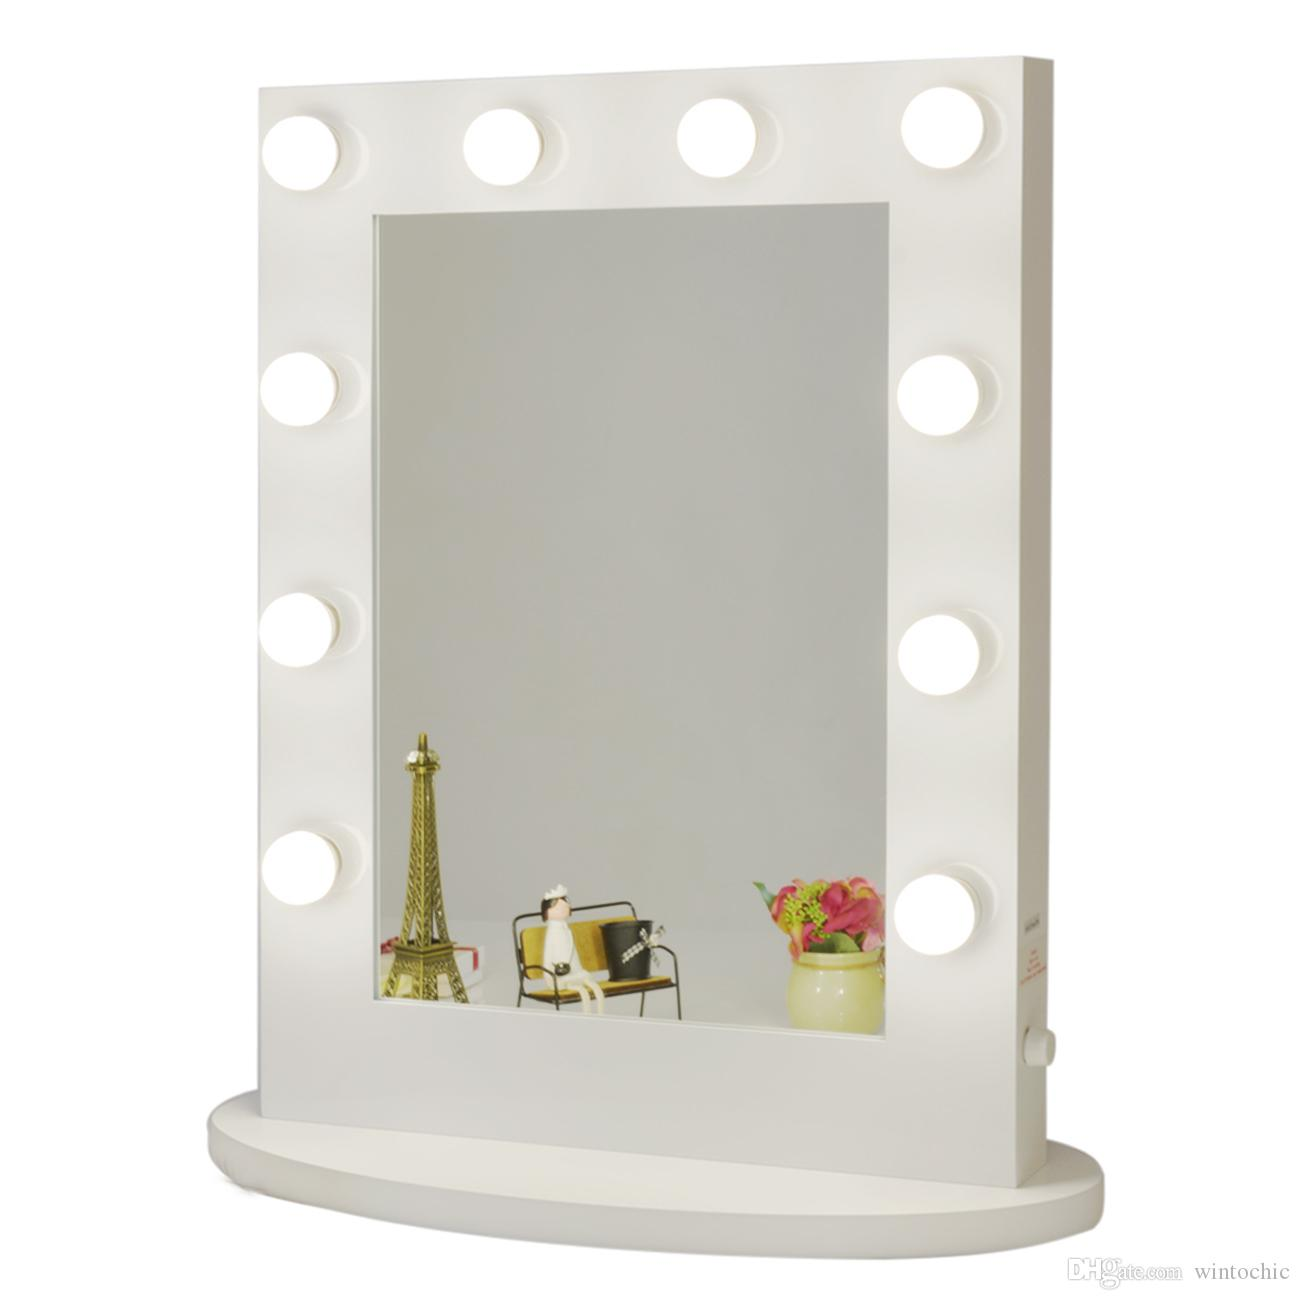 White Vanity Lighted Hollywood Makeup Mirror with Dimmer Stage Beauty Mirror  Makeup Vanity Mirror Beauty Mirror Online with  234 98 Piece on Wintochic s. White Vanity Lighted Hollywood Makeup Mirror with Dimmer Stage